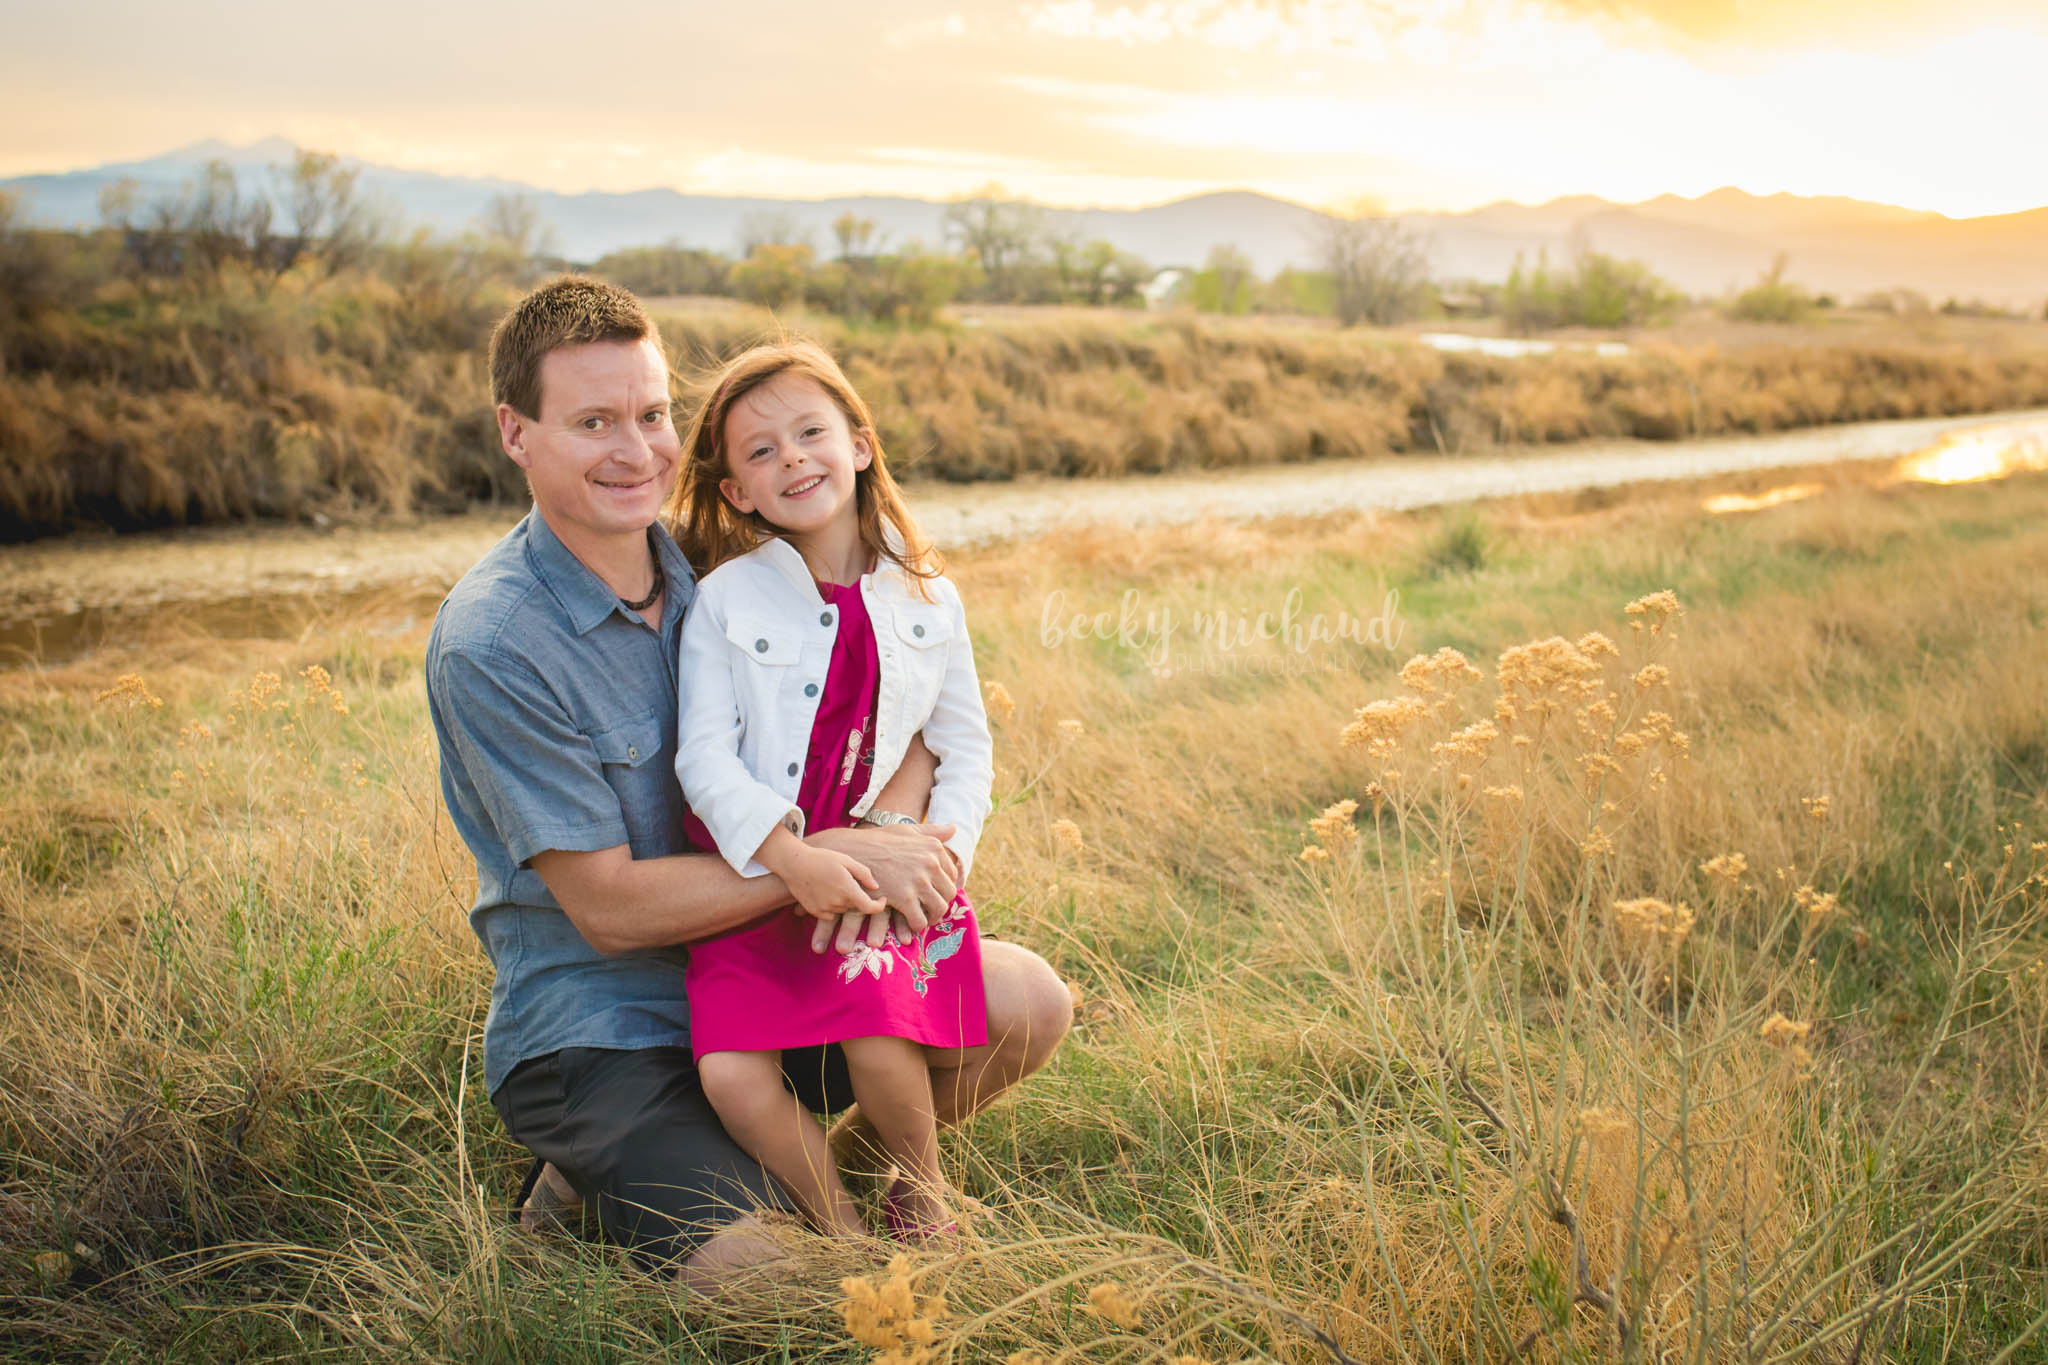 a father and his daughter pose in a field in front of the mountains  for their photo session in Loveland, Colorado